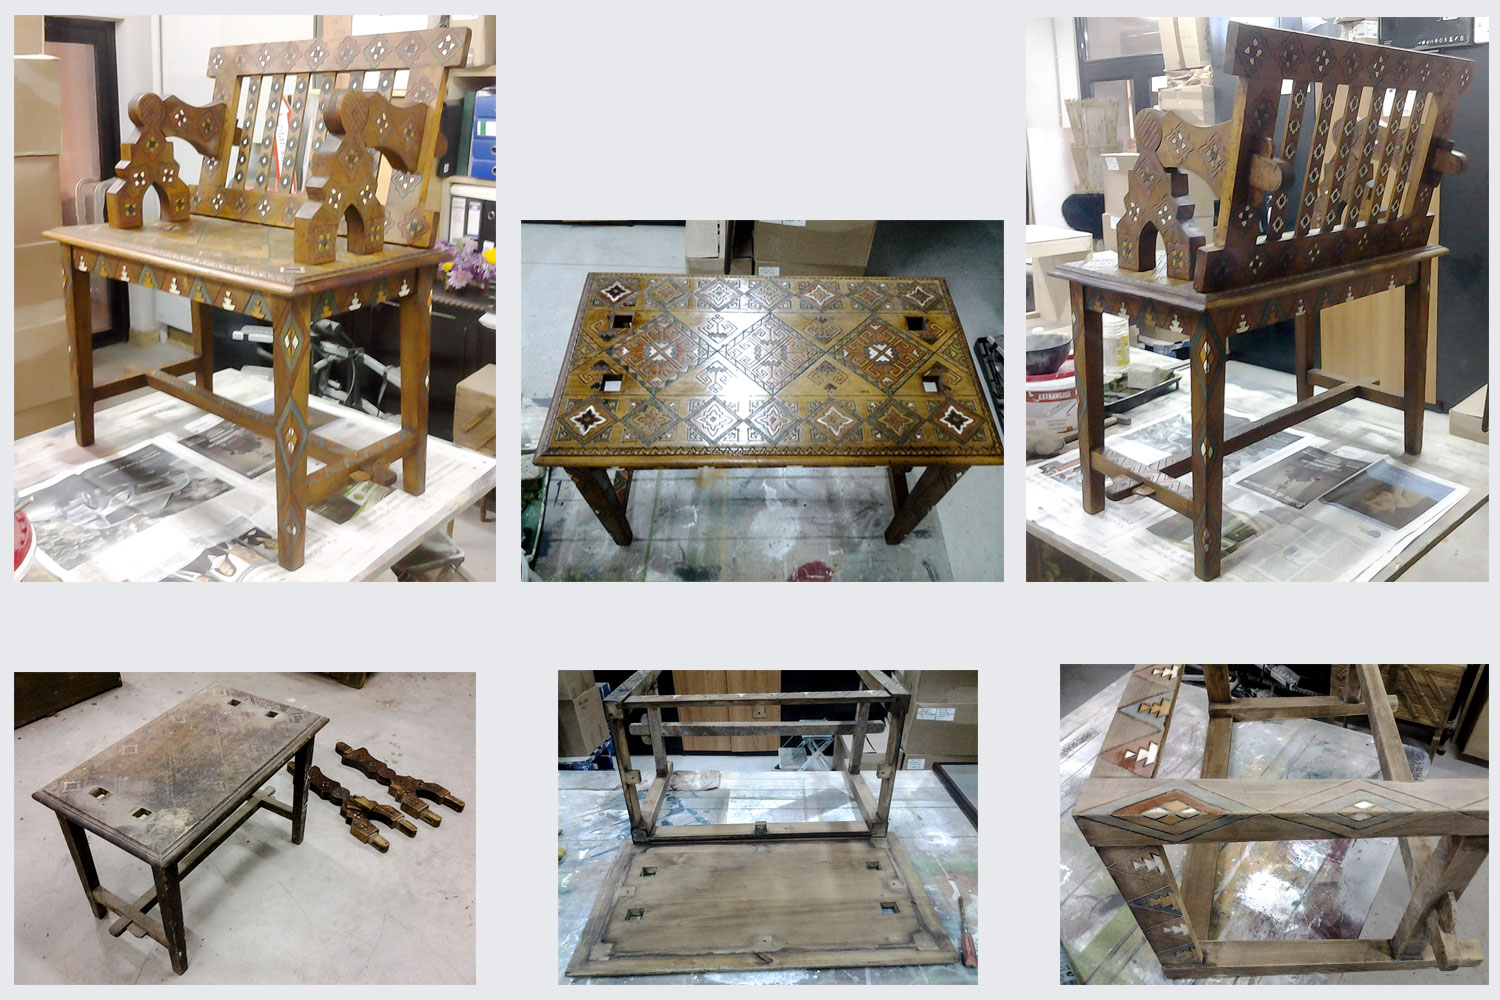 Furniture_Reconditioning_1